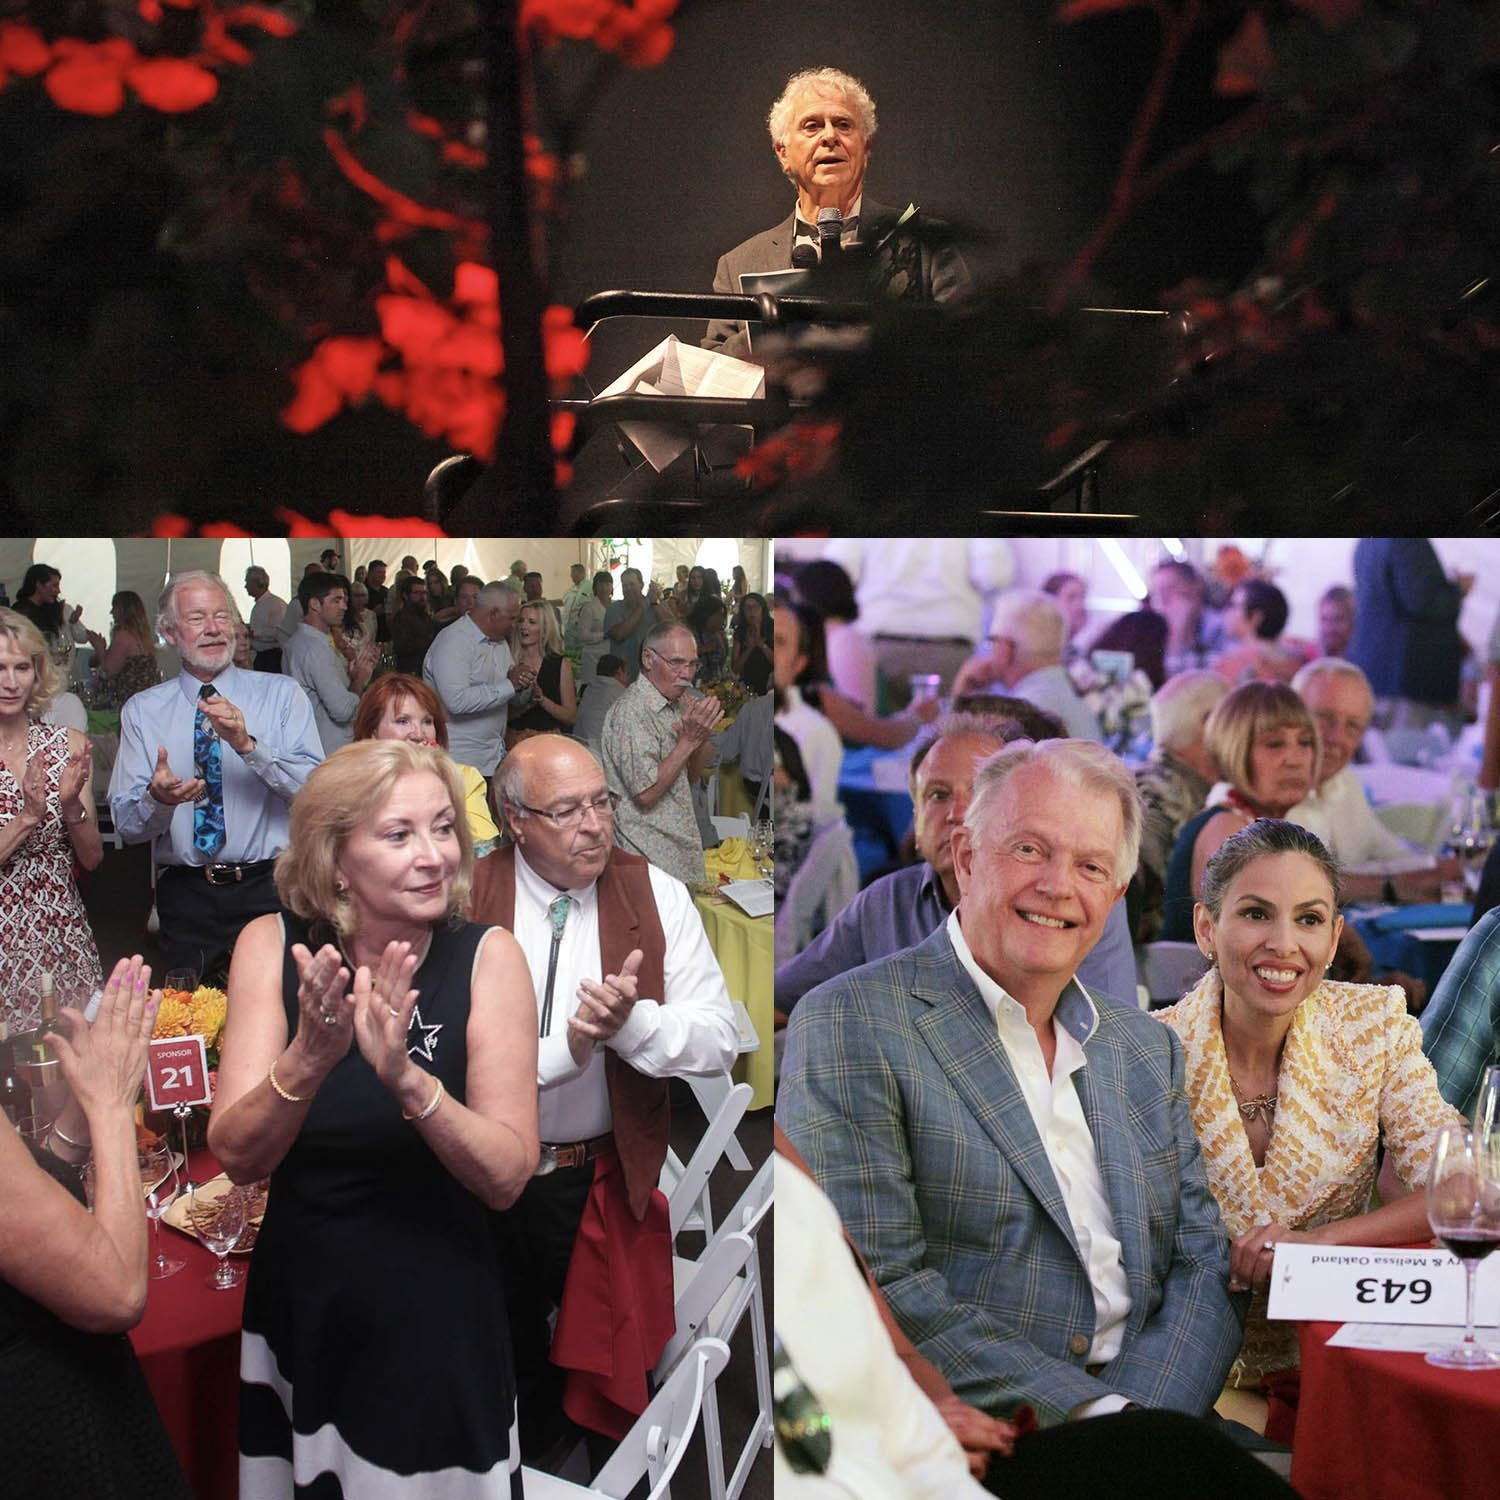 A photo collage of National Advisory Board members smiling, clapping, or speaking at different benefit events.